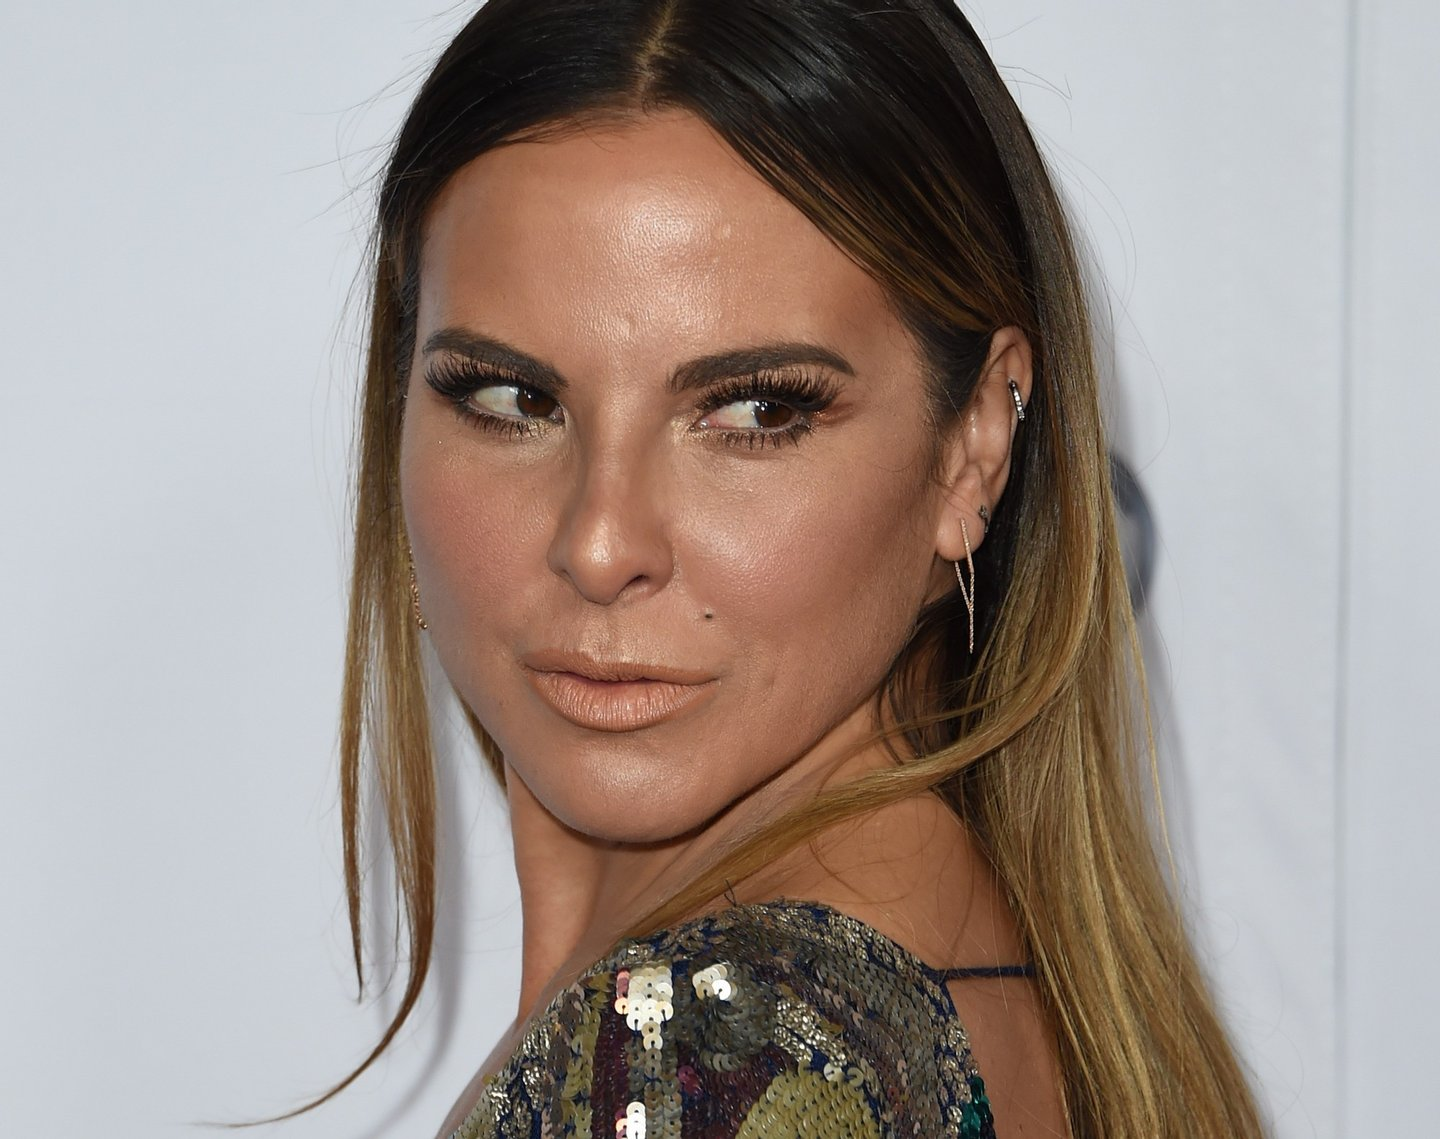 Actress Kate del Castillo arrives for the Centerpiece Gala Premiere of Alcon Entertainment's 'The 33' during AFI FEST 2015 presented by Audi at TCL Chinese Theatre in Hollywood, California on November 9, 2015. AFP PHOTO/MARK RALSTON (Photo credit should read MARK RALSTON/AFP/Getty Images)